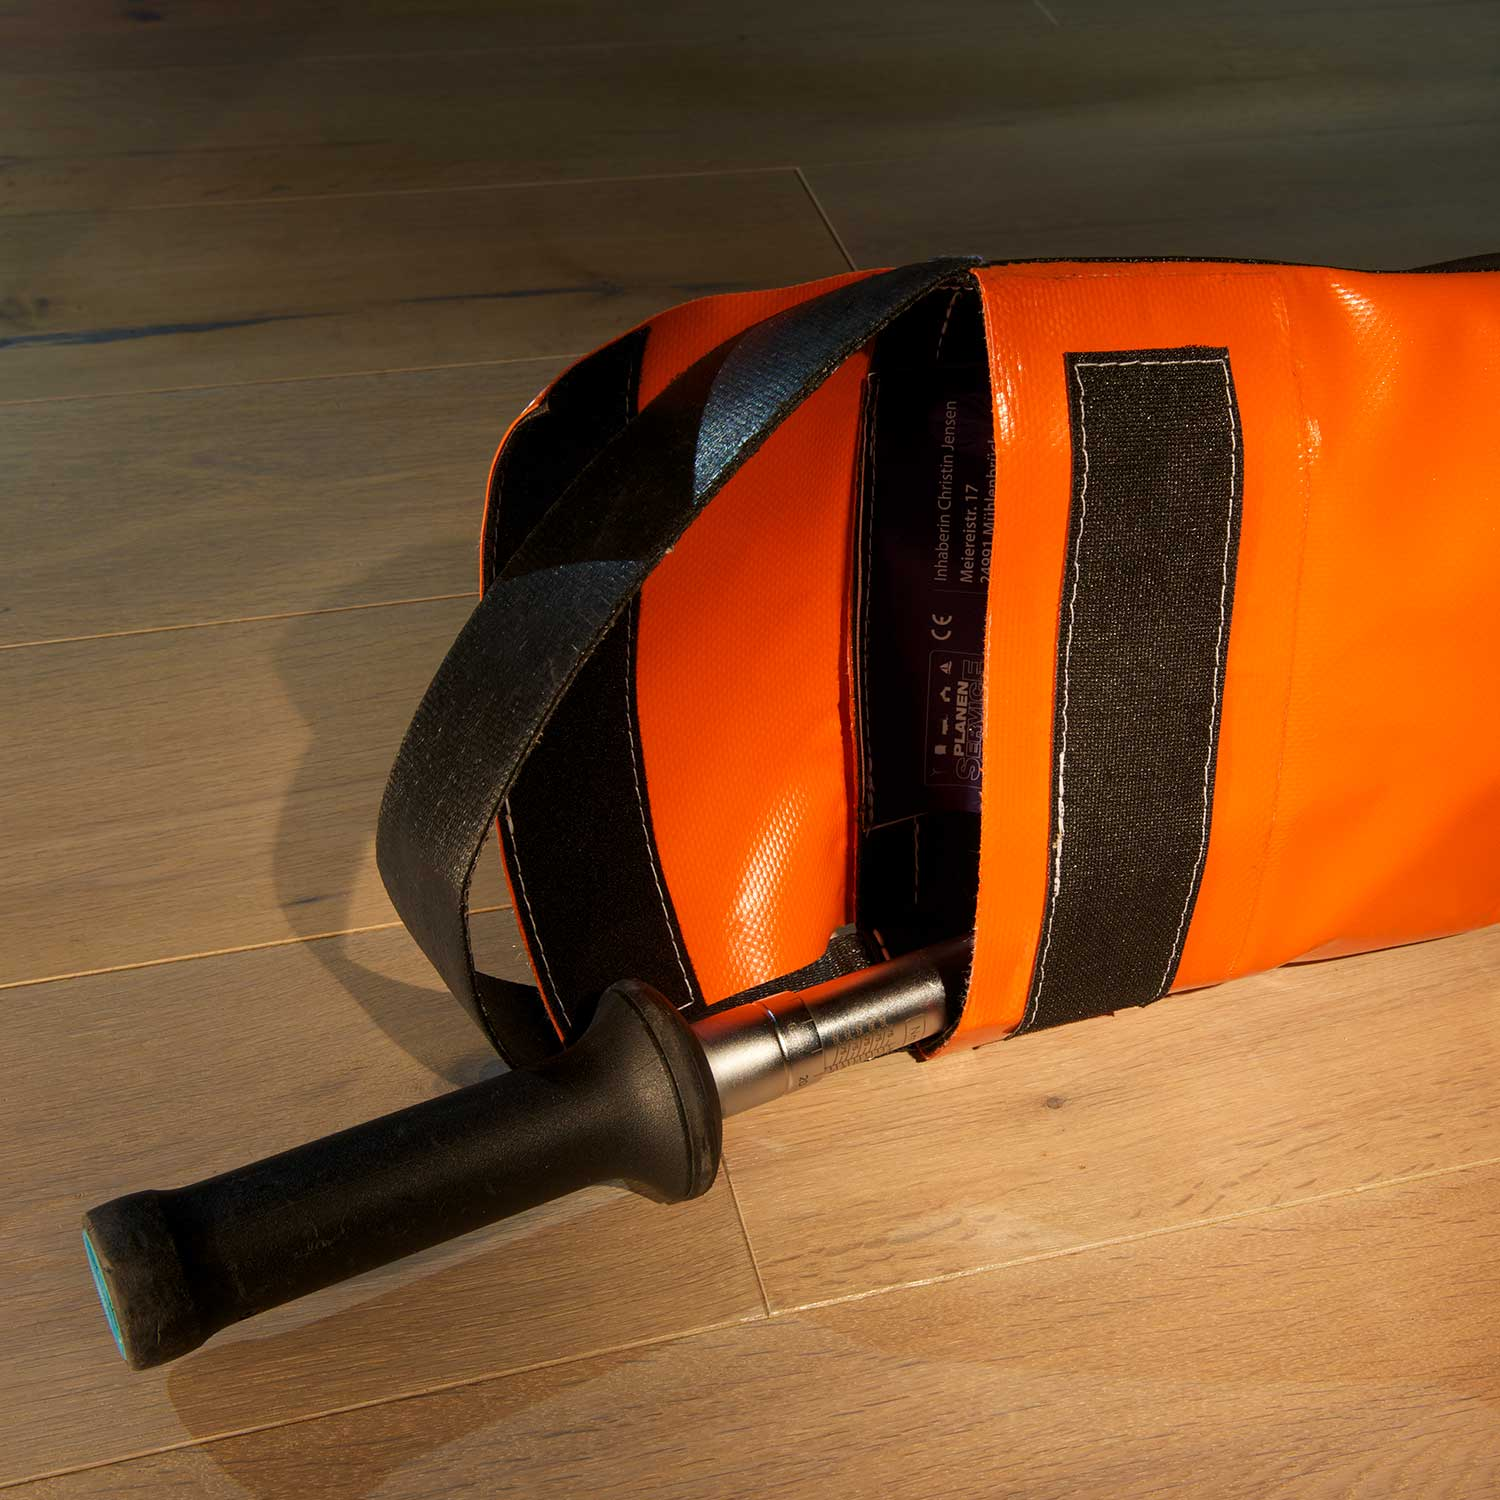 Bag clasp, torque wrench, PVC fabric